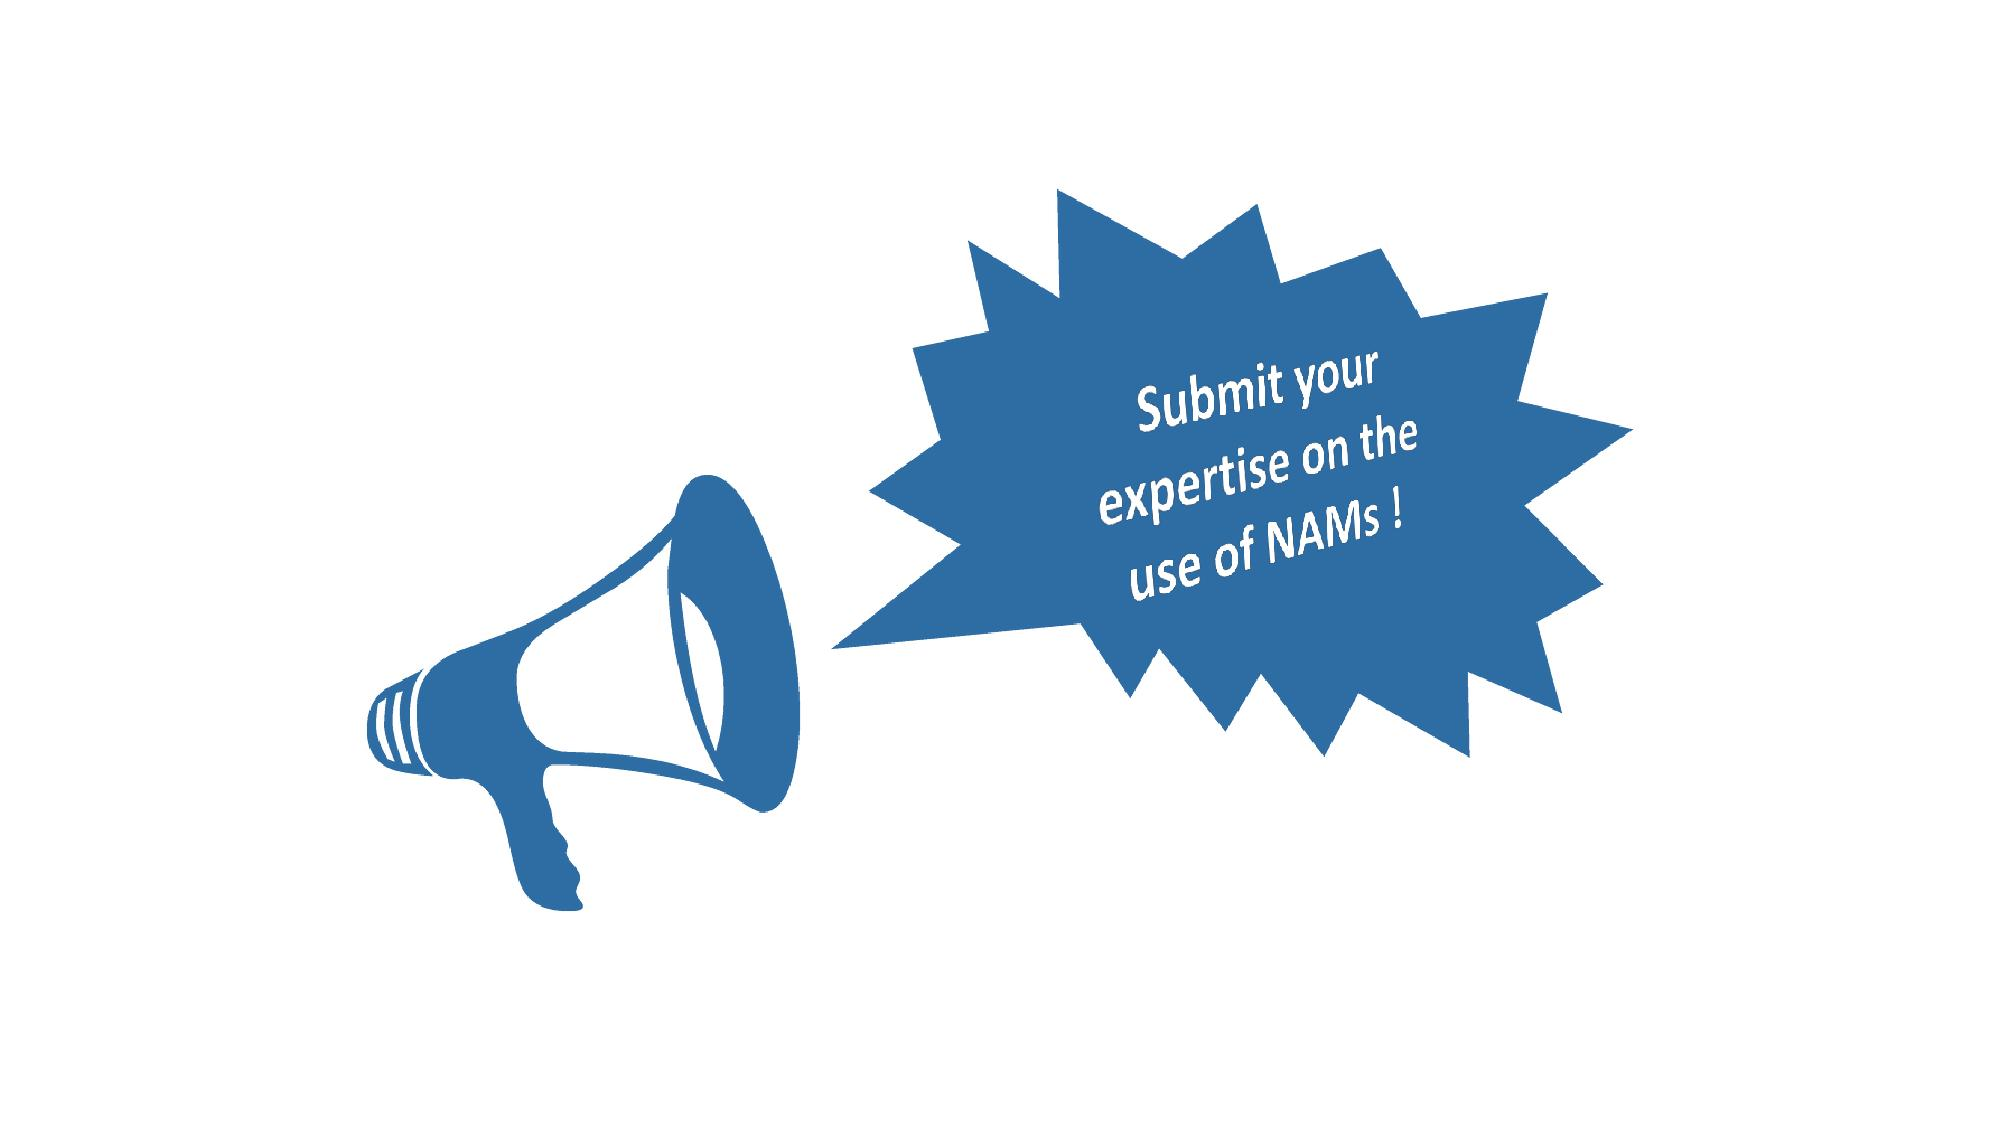 Submit your expertise on the use of NAMs